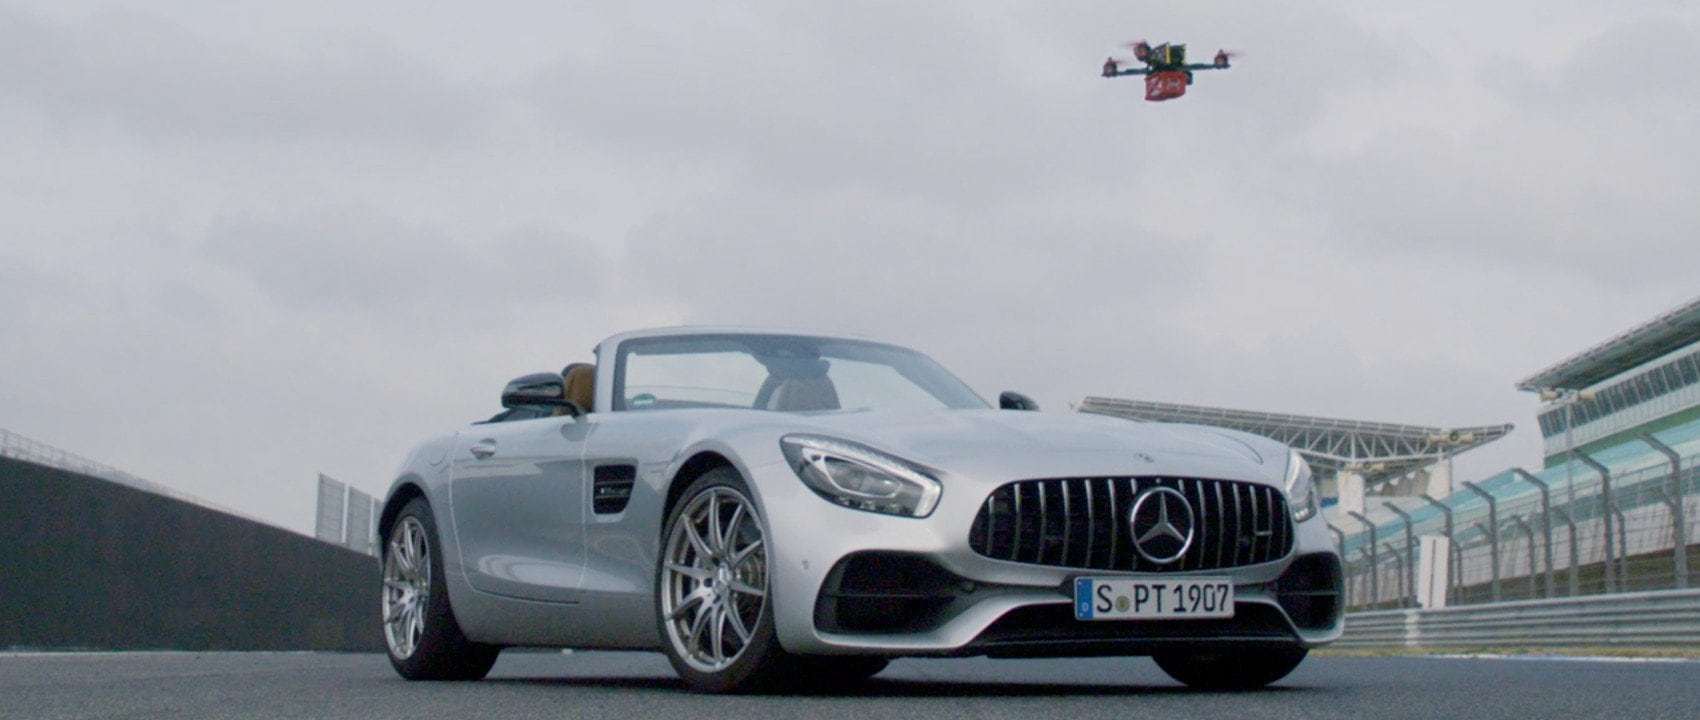 Mercedes-AMG GT Roadster: Sports Car vs Racing Drone.